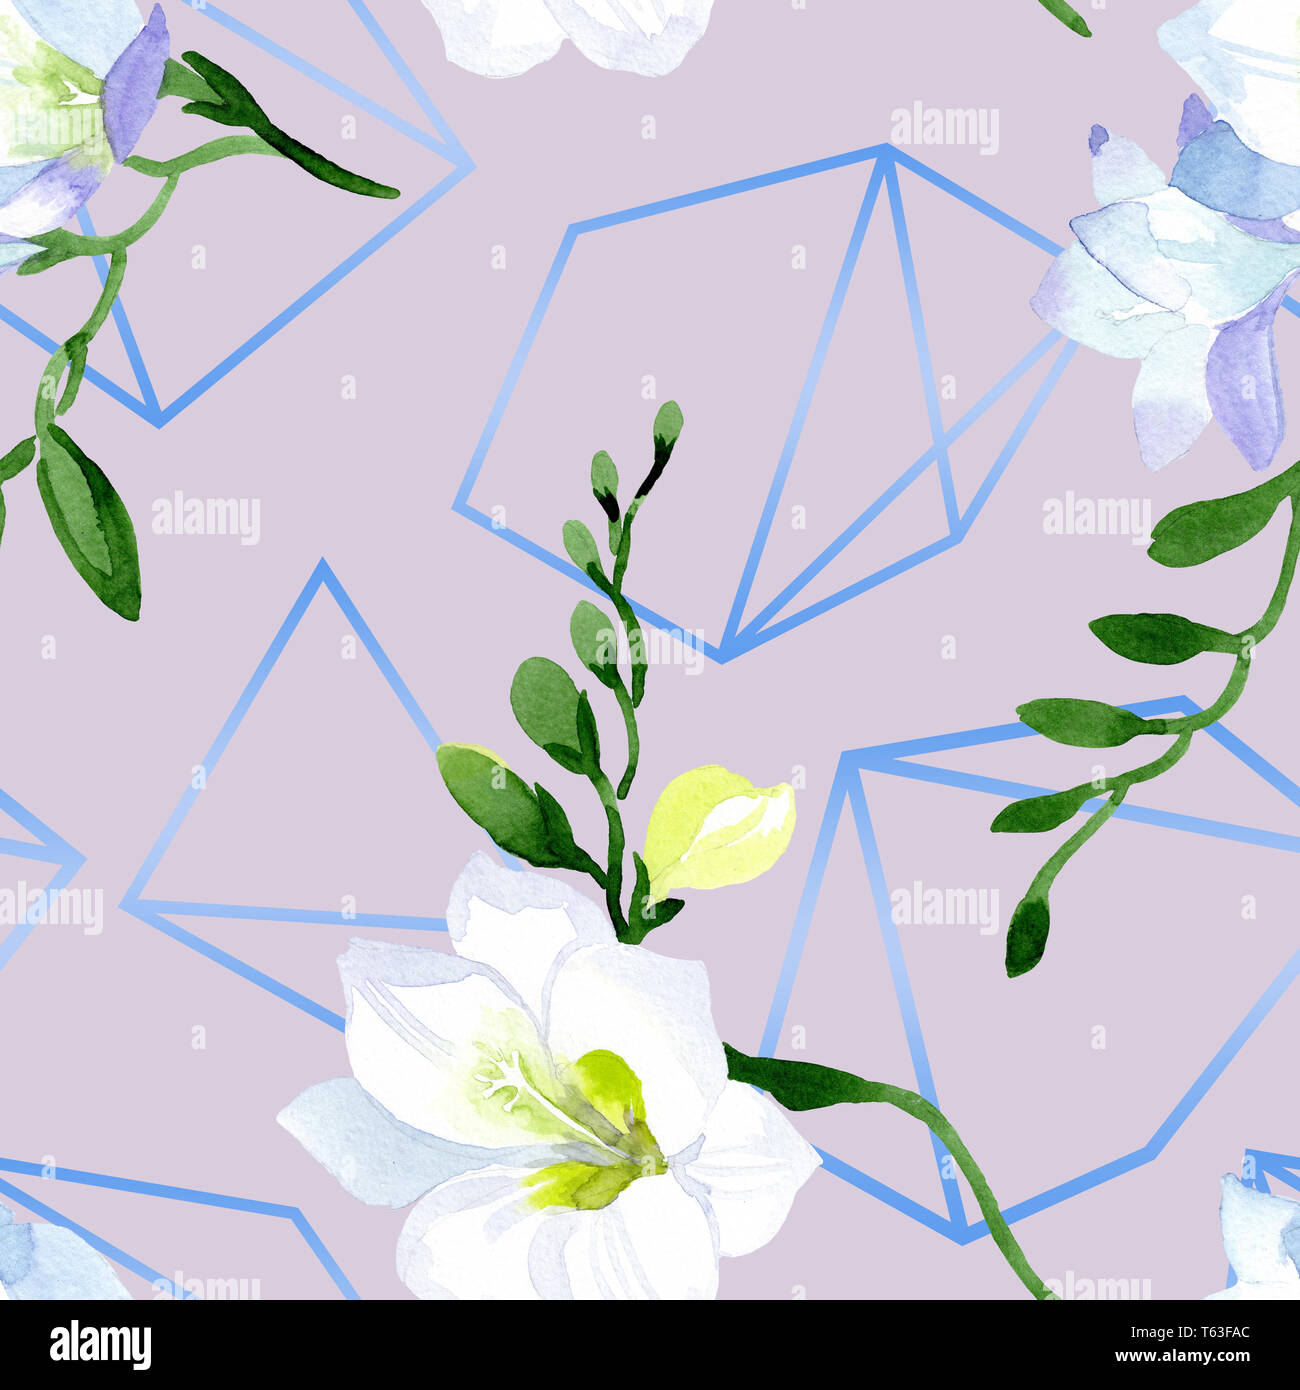 9a264bd23 White freesia floral botanical flowers. Watercolor background illustration  set. Seamless background pattern. -